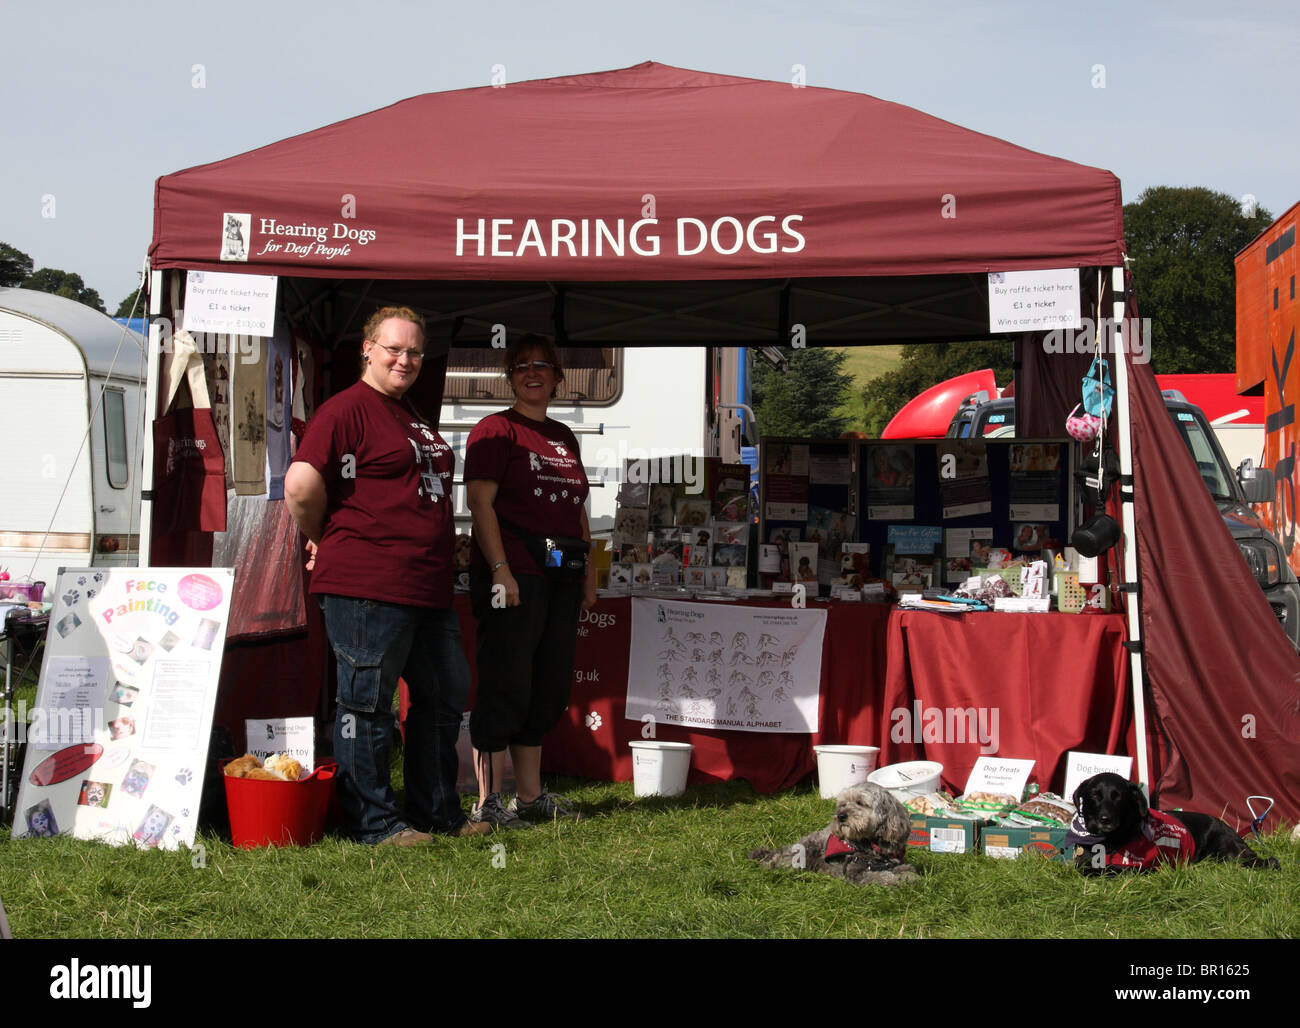 A Hearing Dogs stand at the Chatsworth Country Show, Derbyshire. - Stock Image